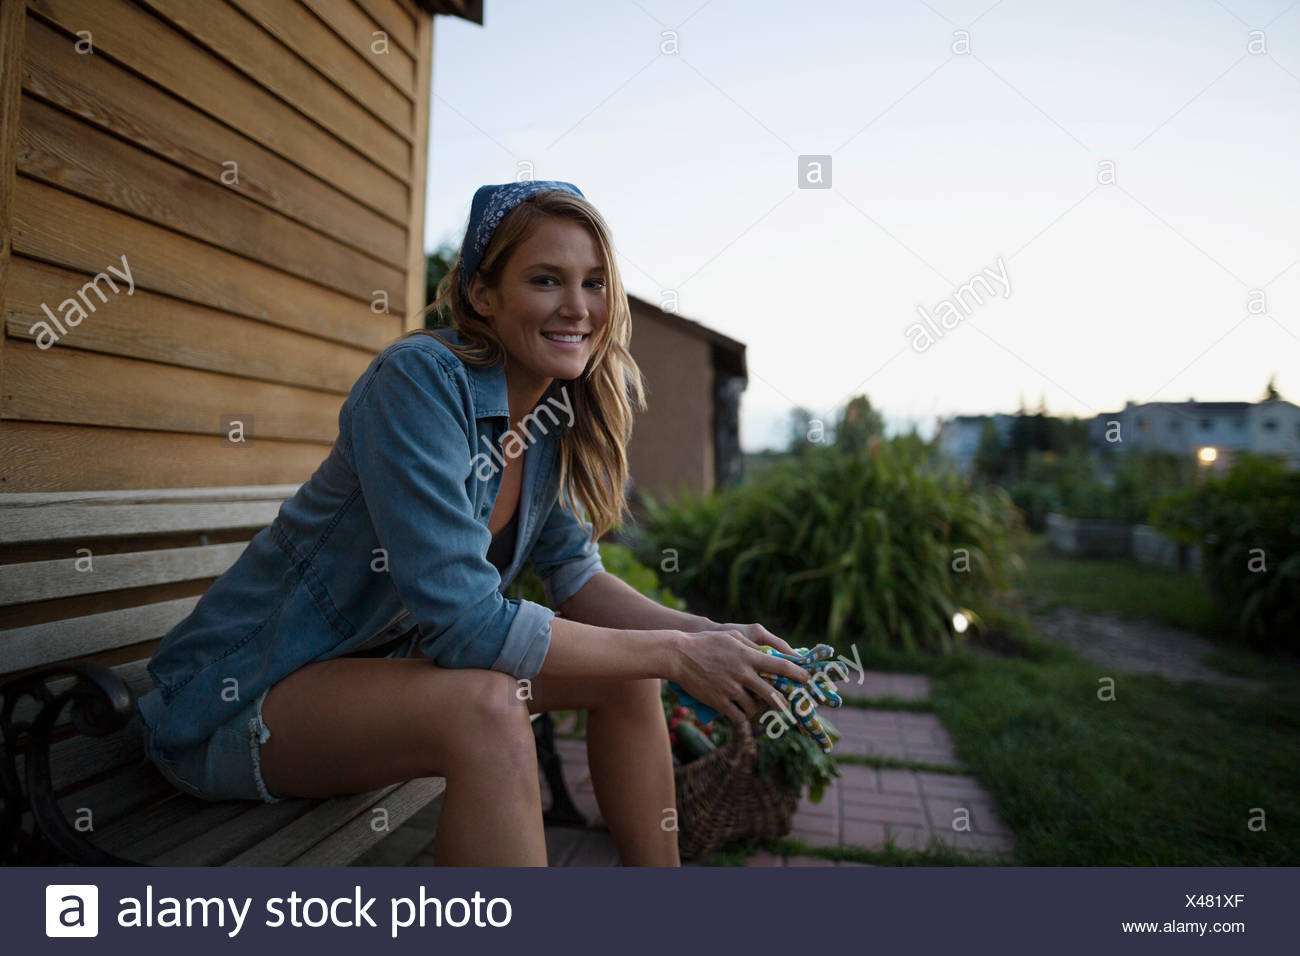 Portrait smiling woman on bench with gardening gloves - Stock Image